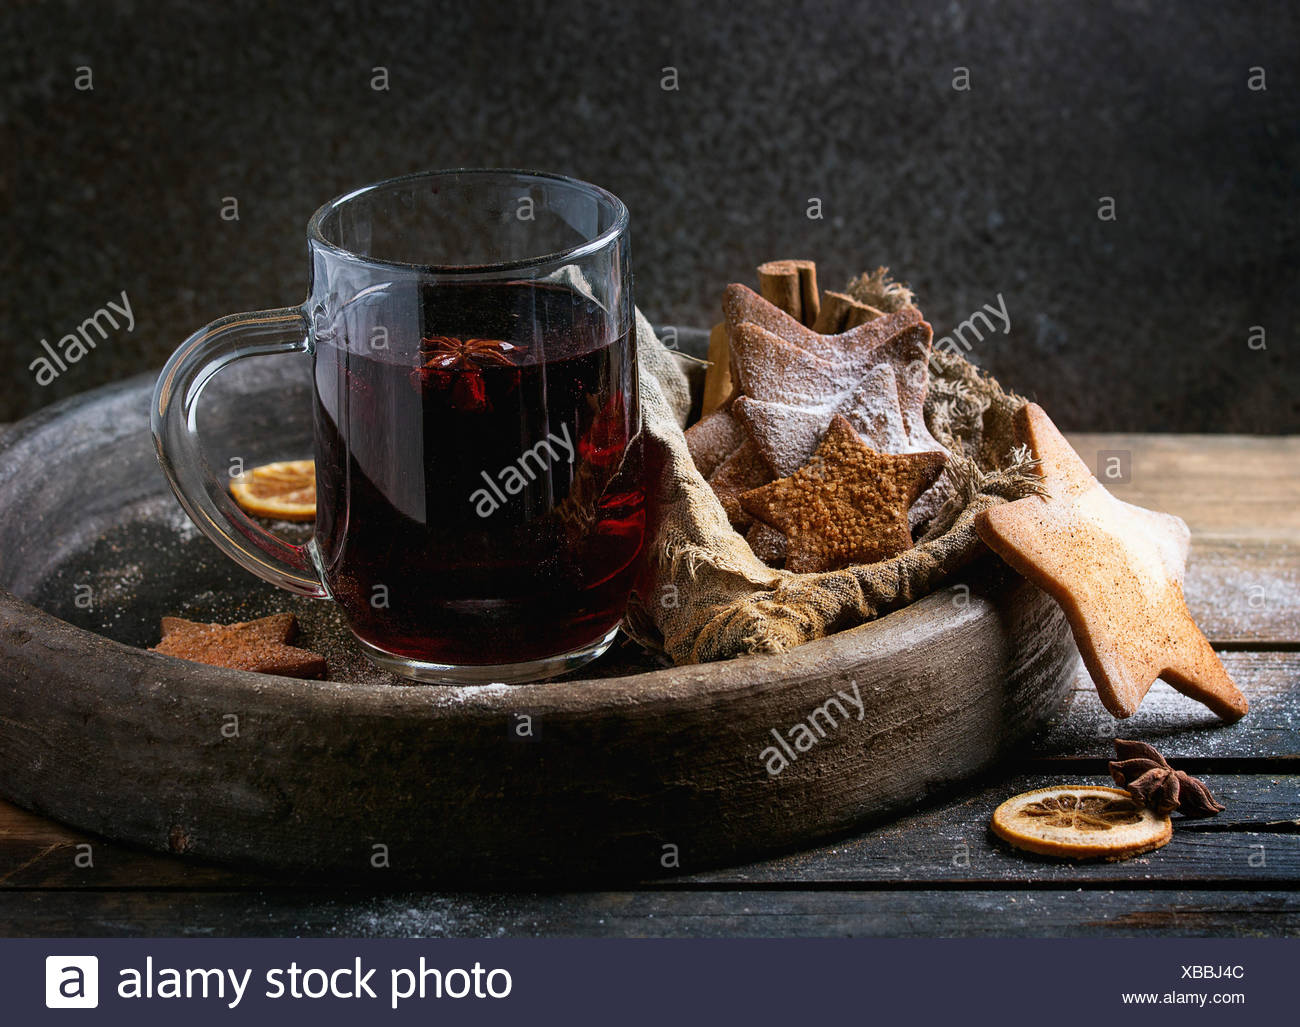 Red Clay Stock Photos & Red Clay Stock Images - Alamy